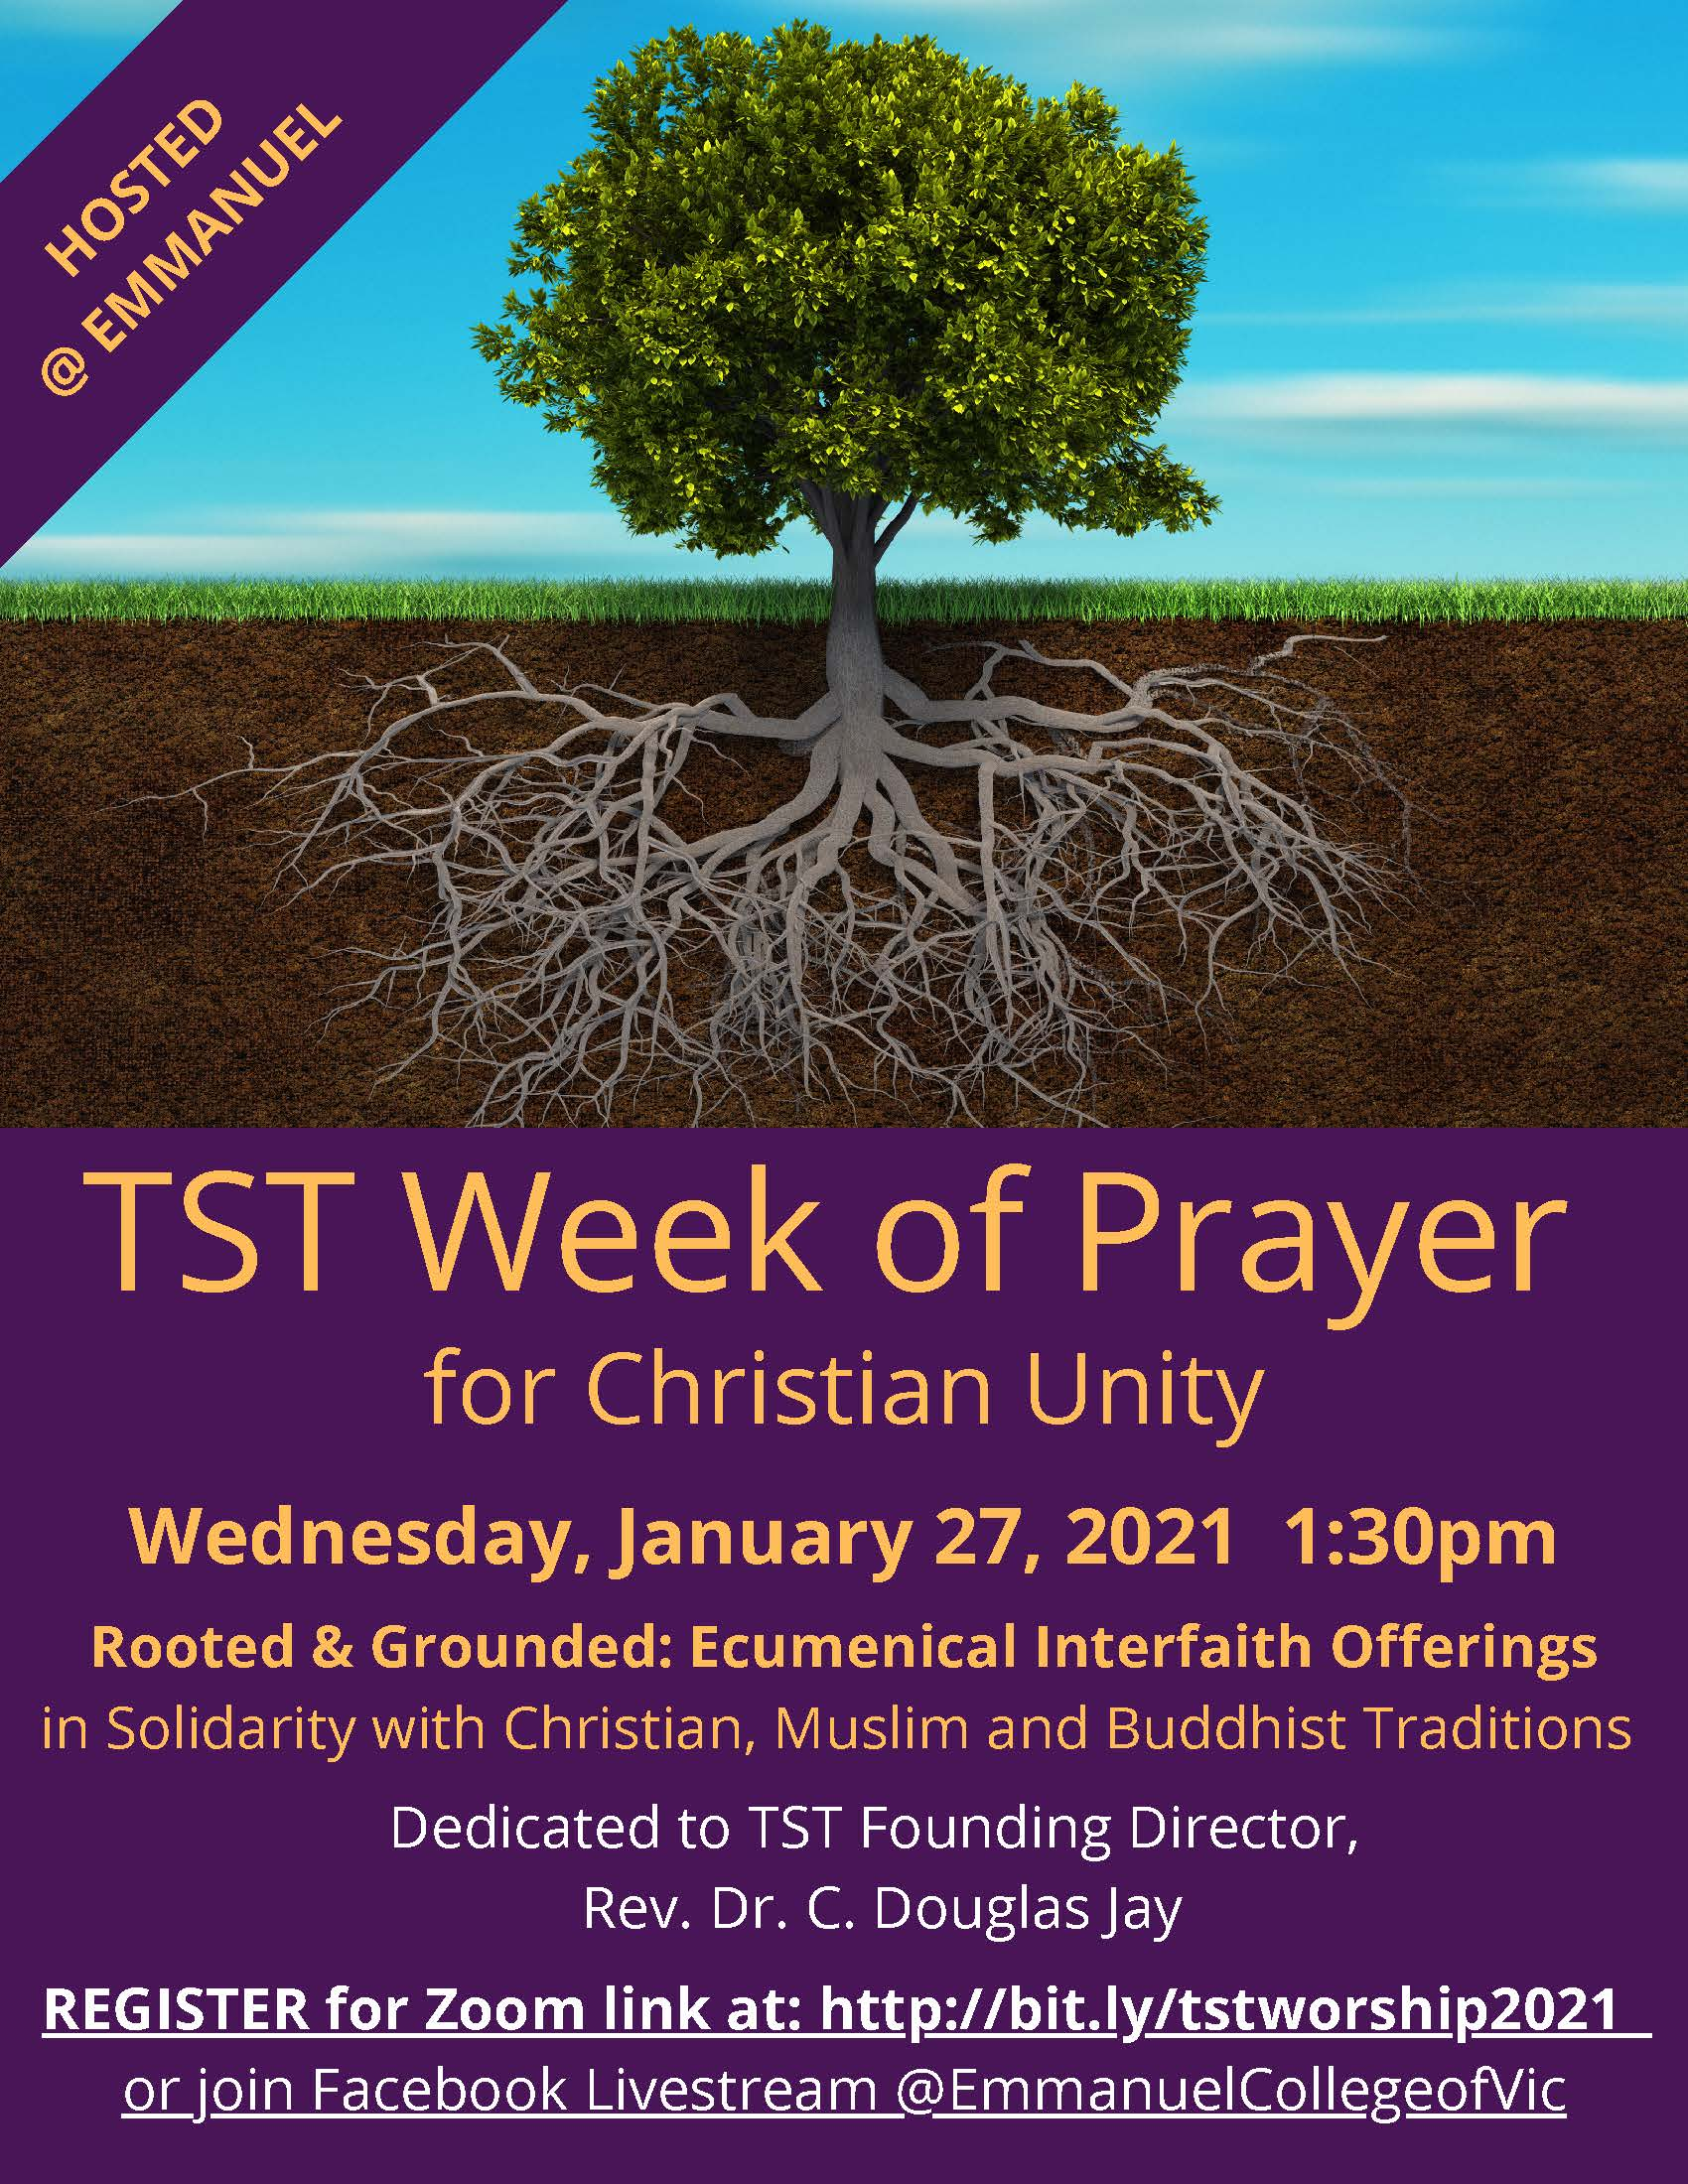 TST-Wide Ecumenical Service during the Week of Prayer, January 27